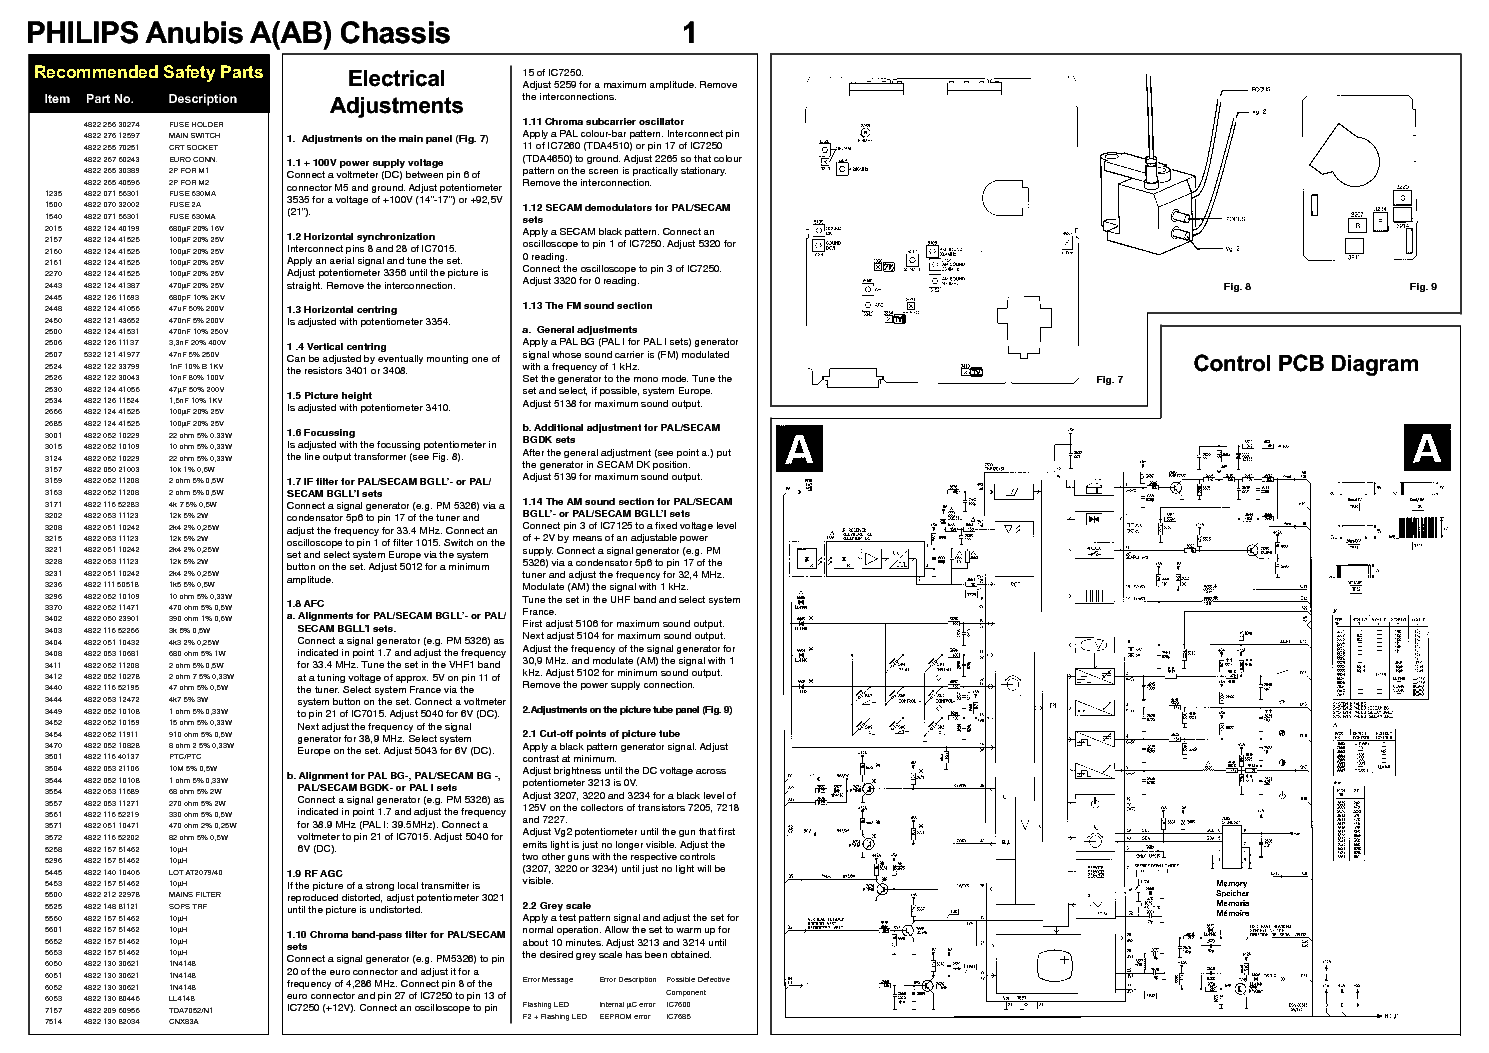 PHILIPS ANUBIS AAB service manual